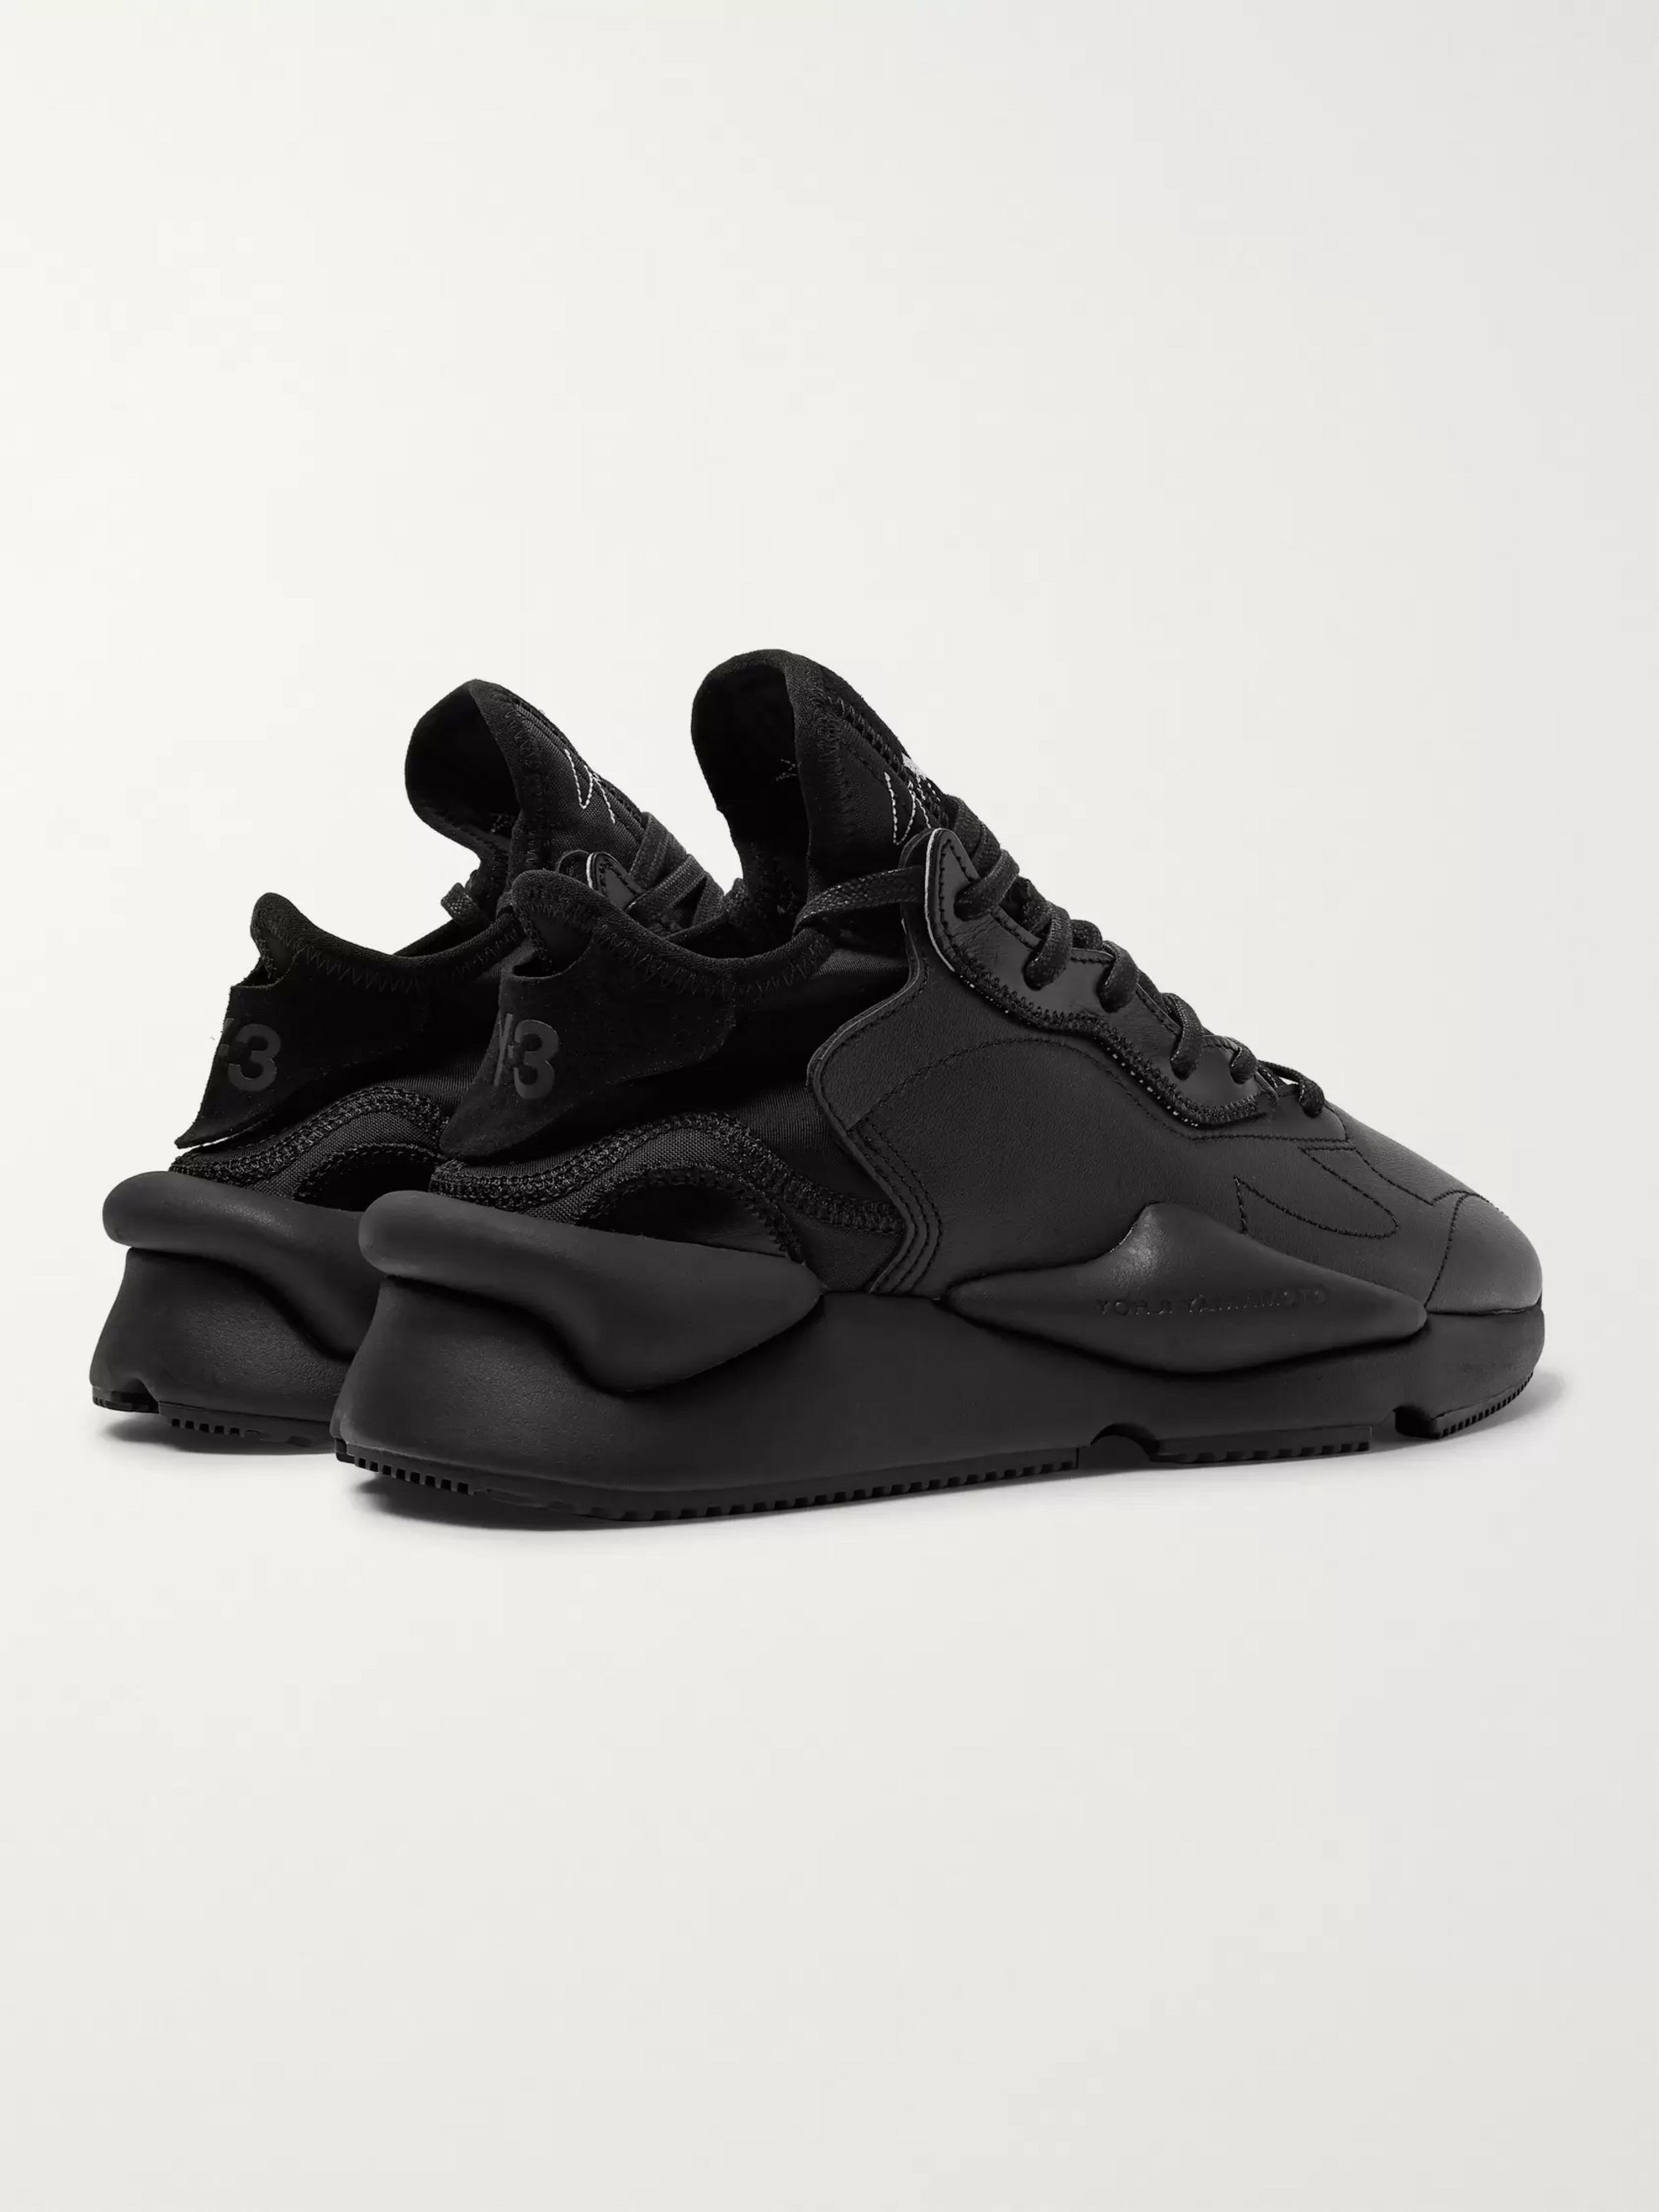 Y-3 Kaiwa Suede-Trimmed Leather and Neoprene Sneakers